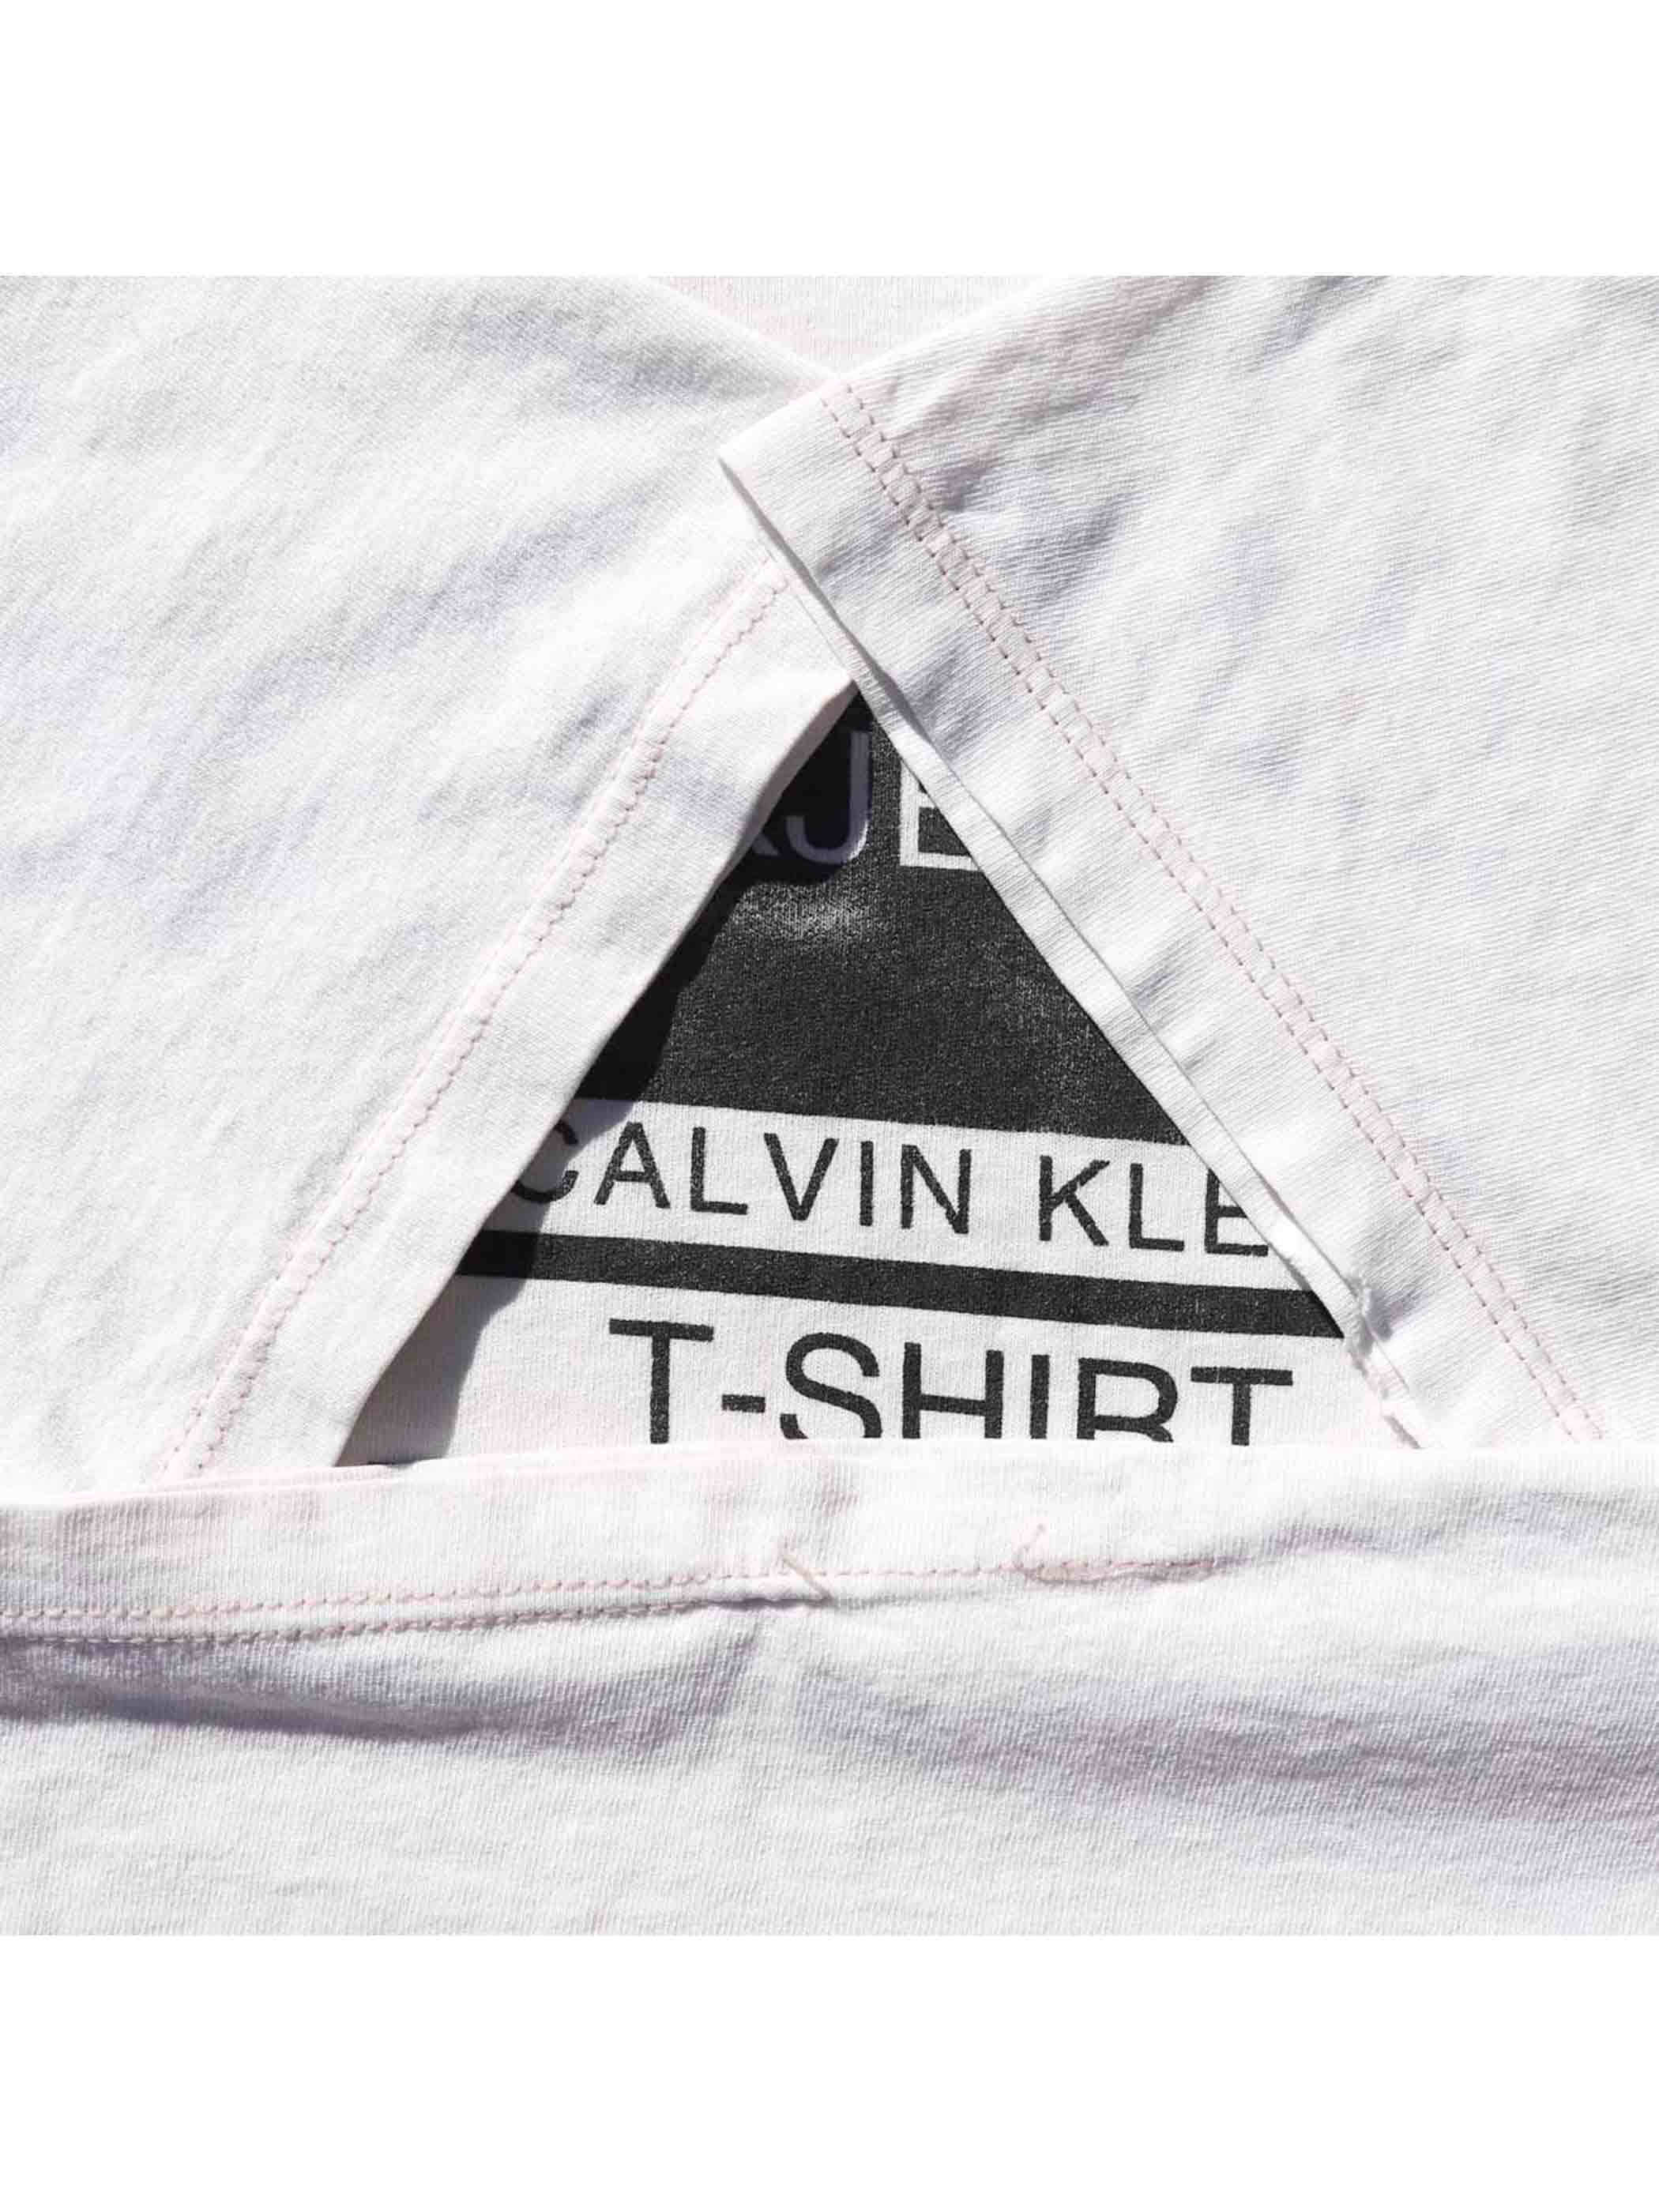 "90's CALVIN KLEIN JEANS ""T-SHIRT"" USA製 Tシャツ [L]"